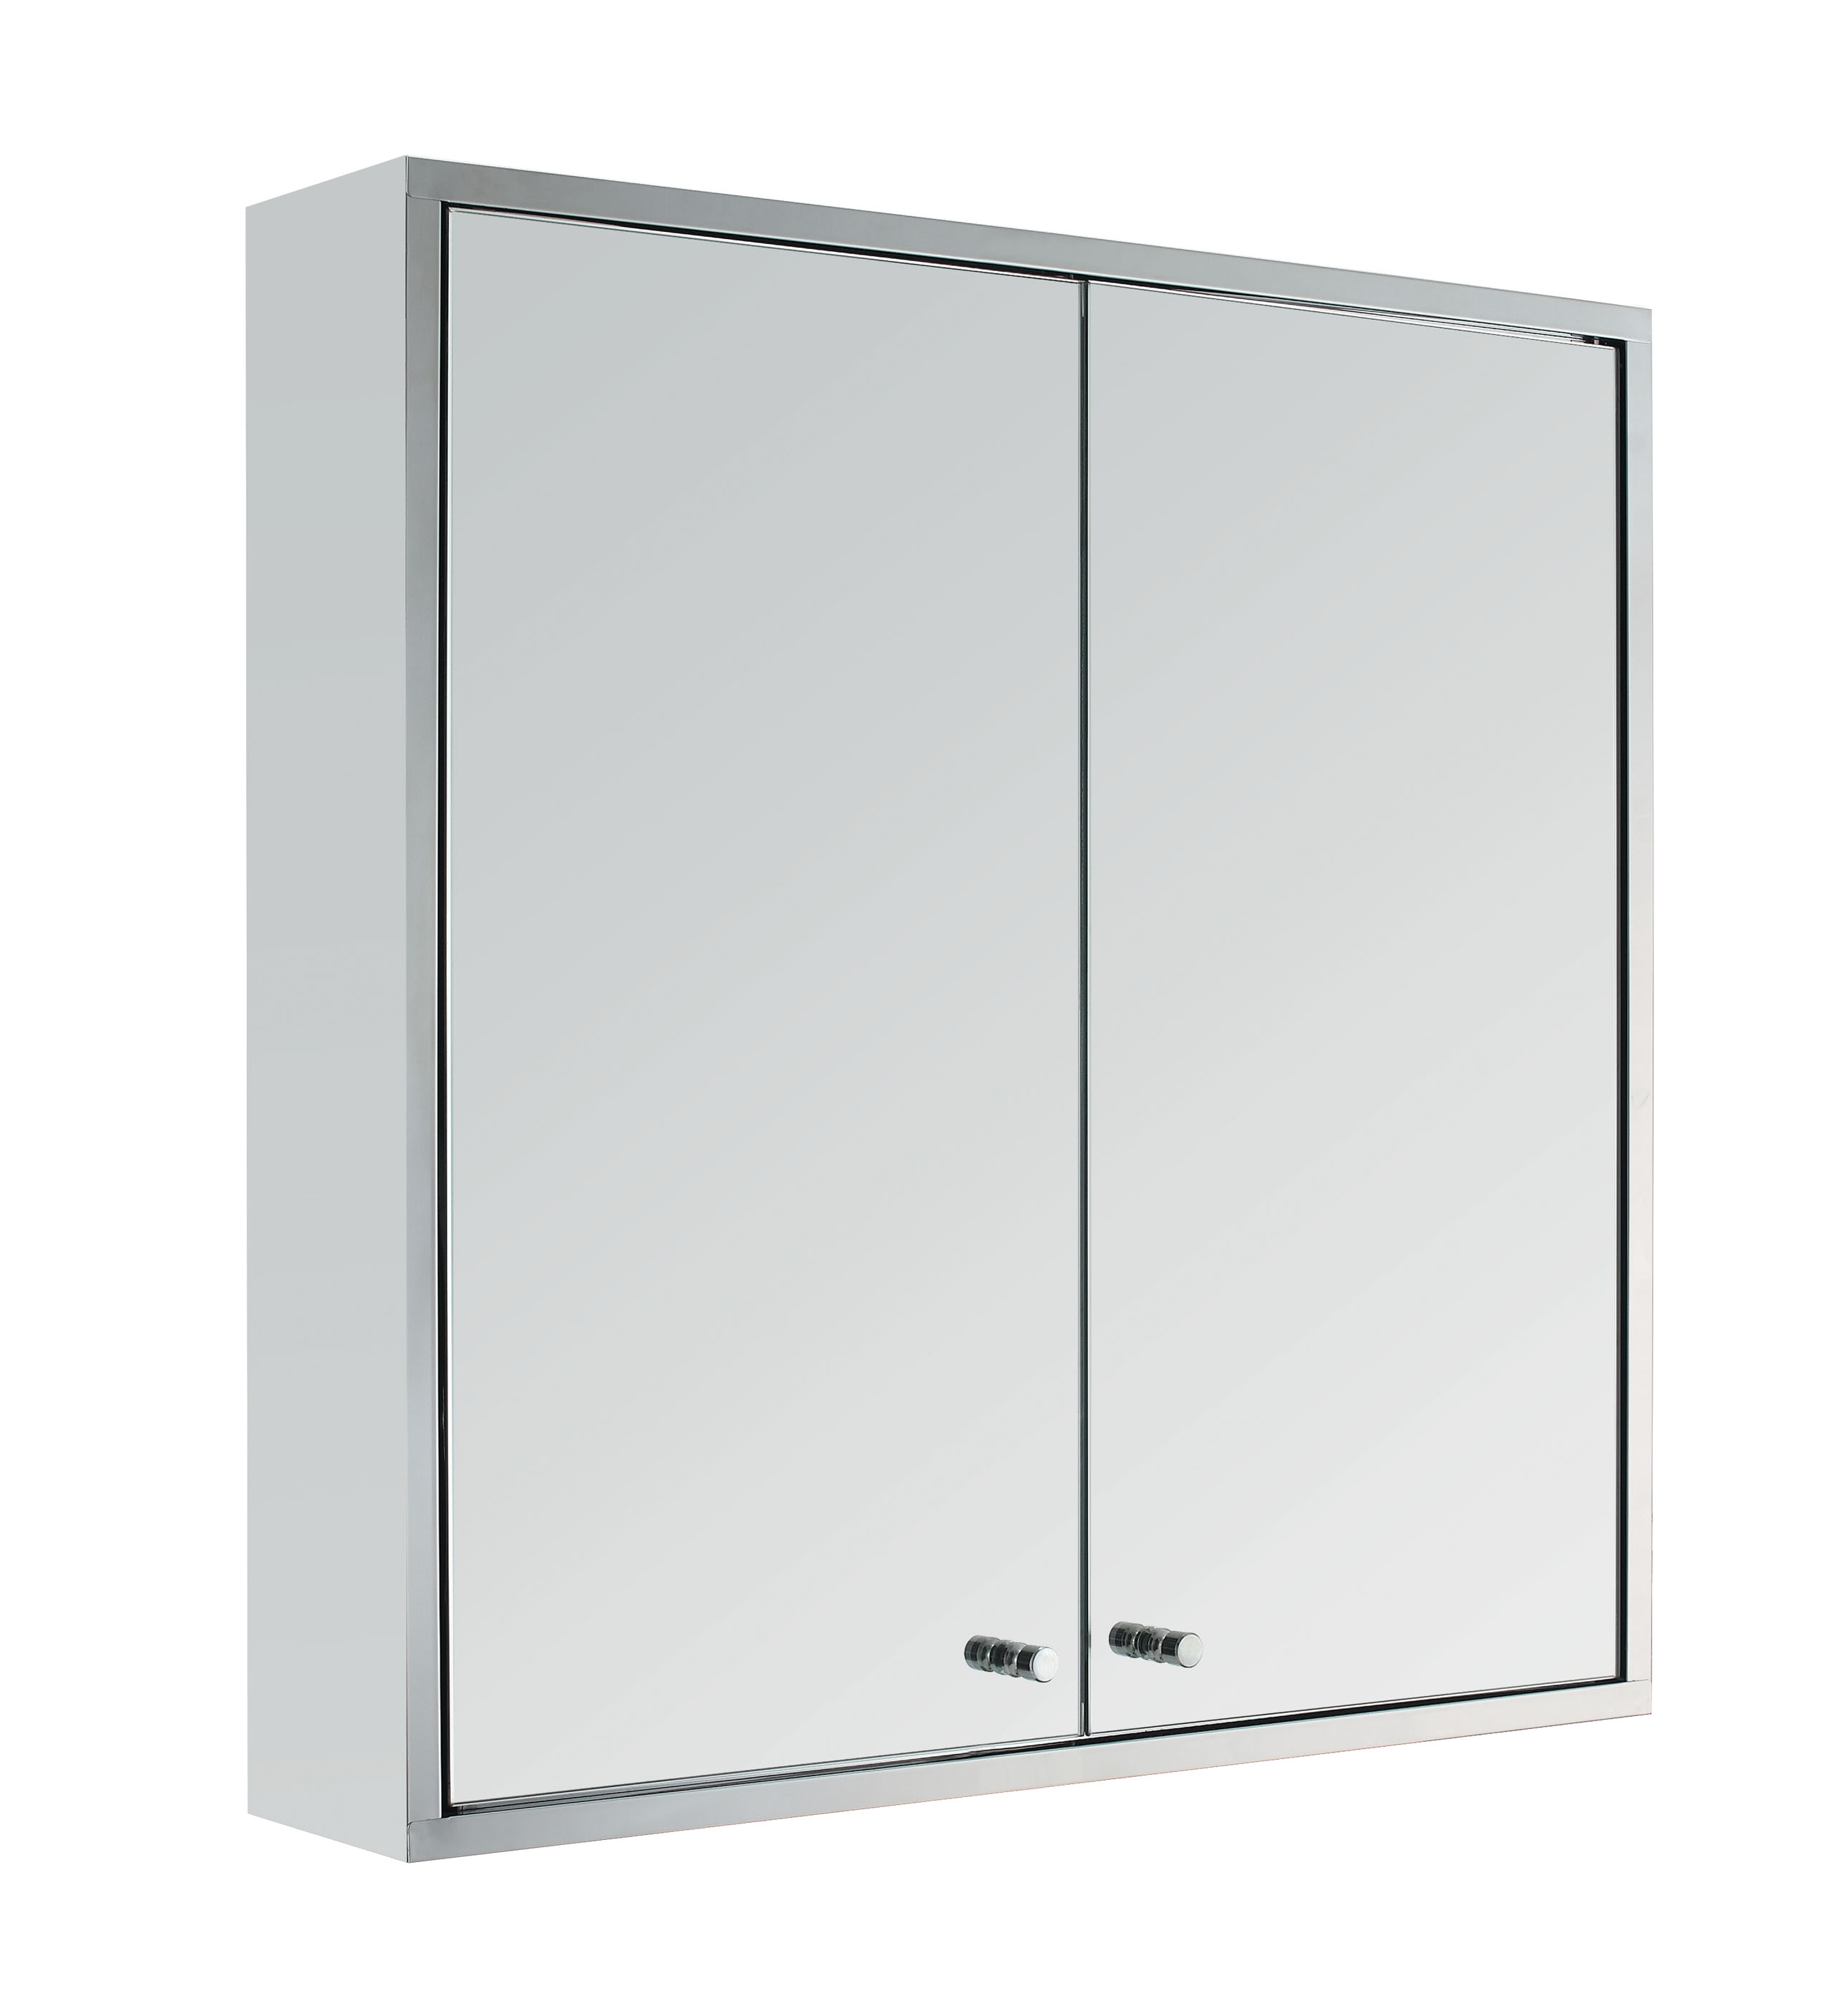 Bathroom Wall Cabinets Stainless Steel